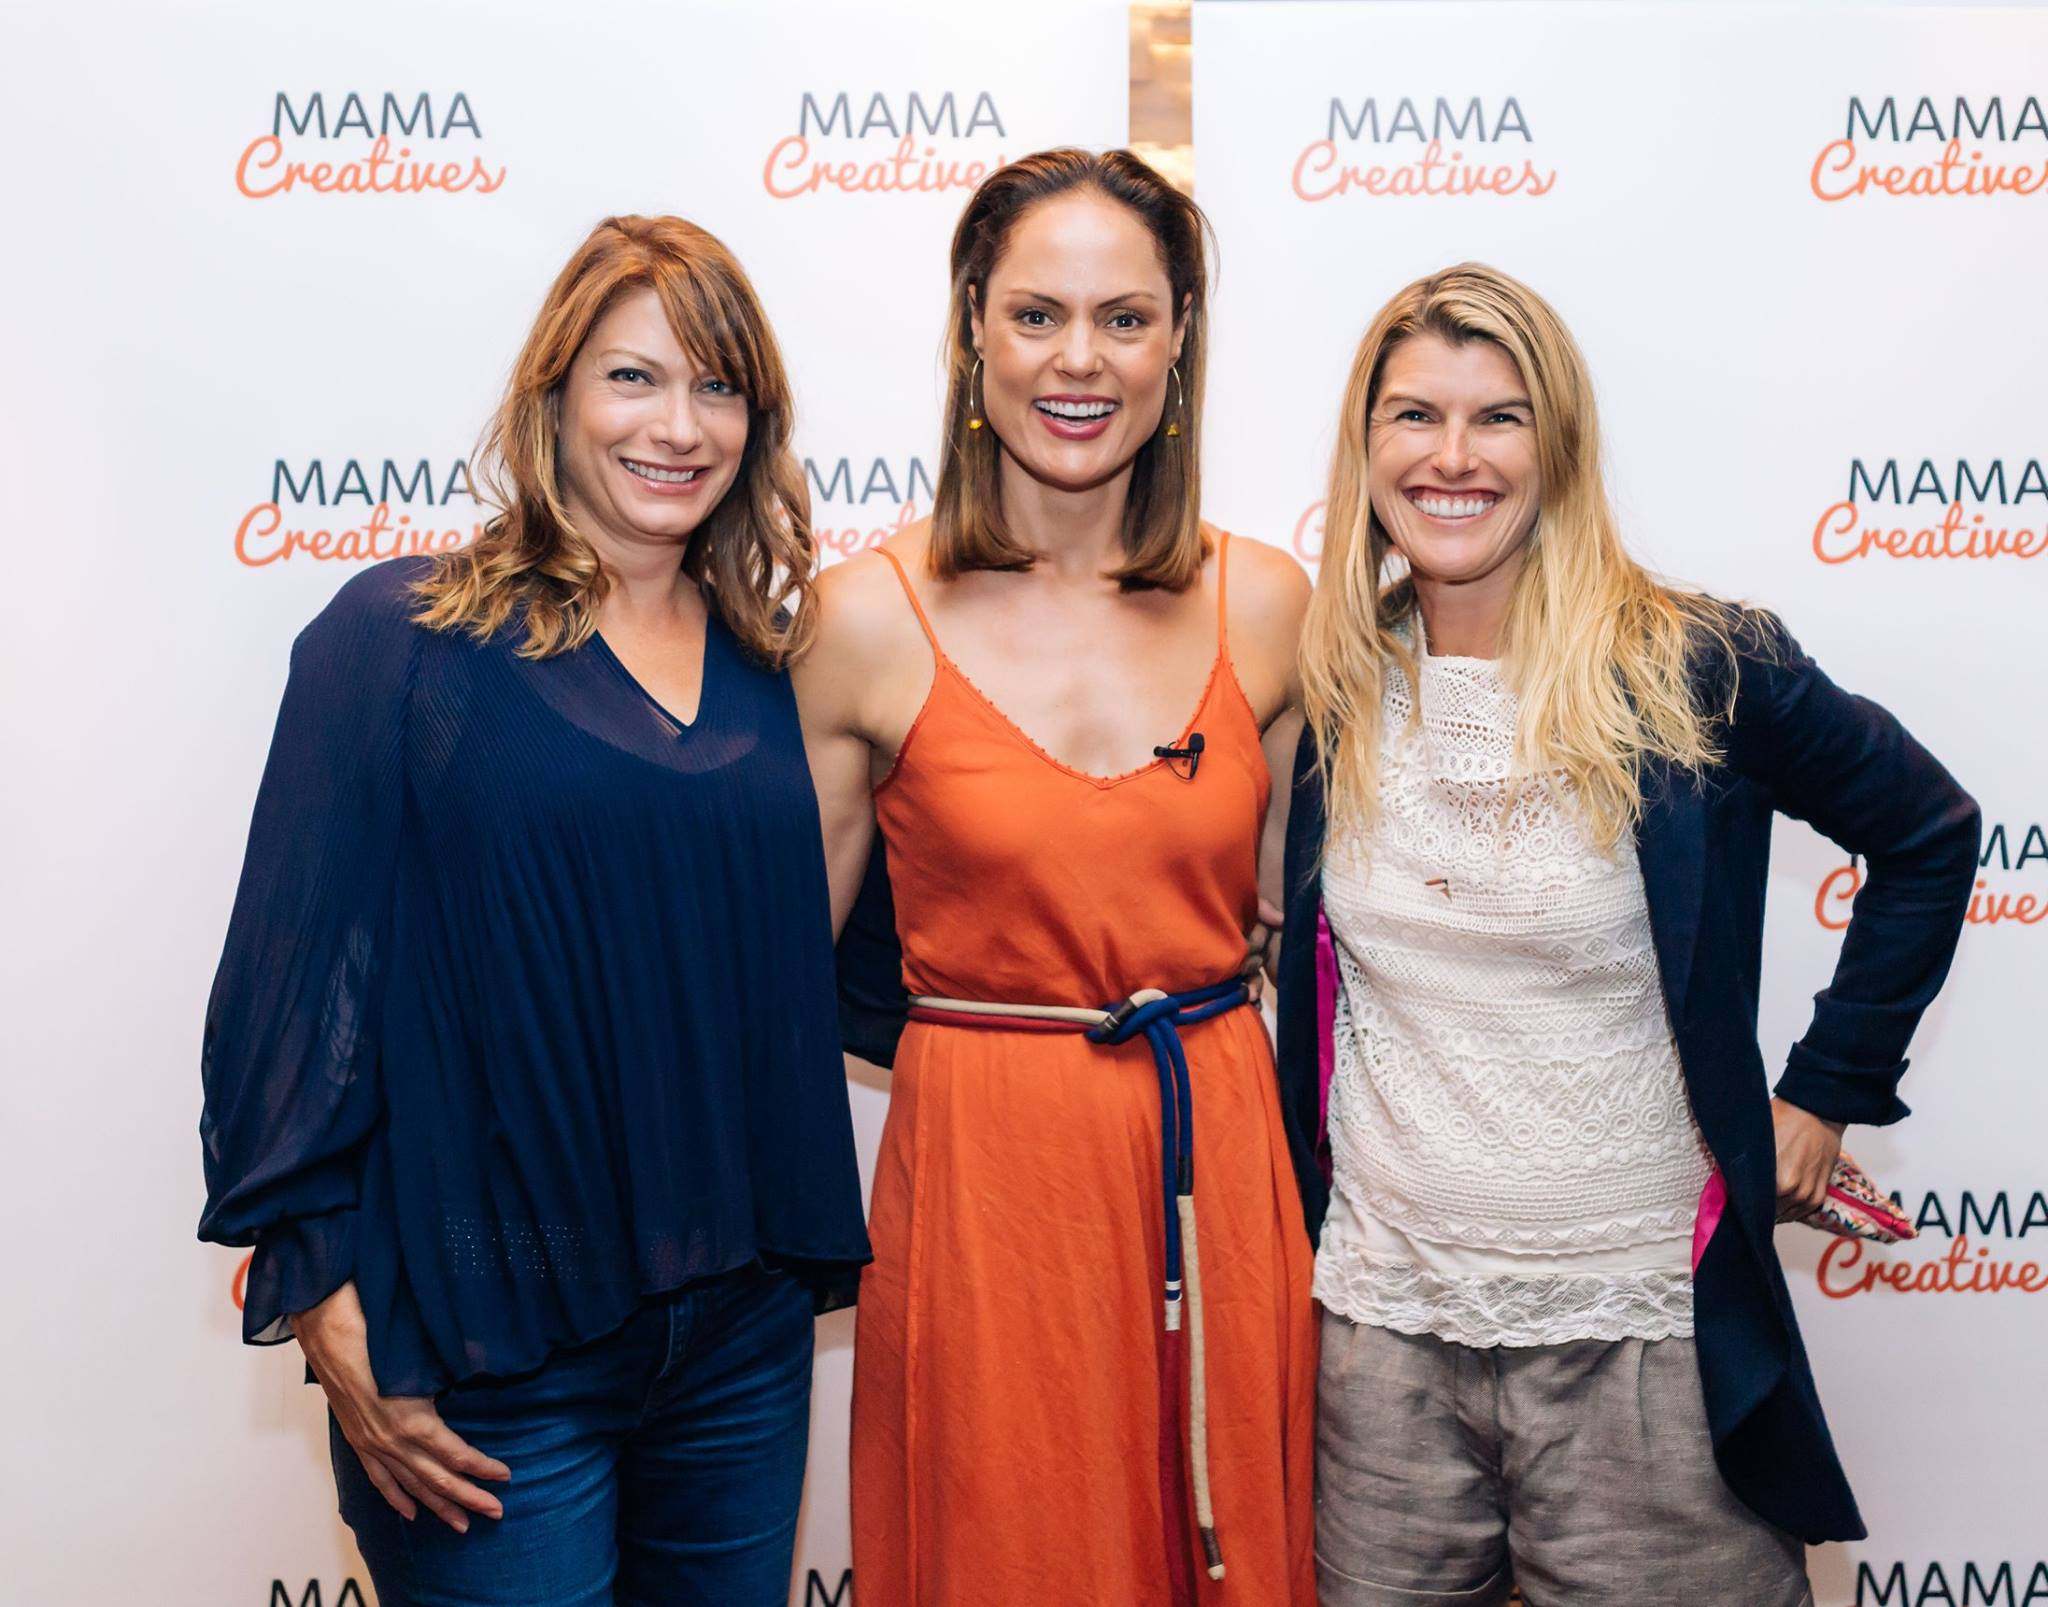 Trio of fabulous creative mamas as we celebrated Mother's Day with our special guest Zoe Bingley-Pullin